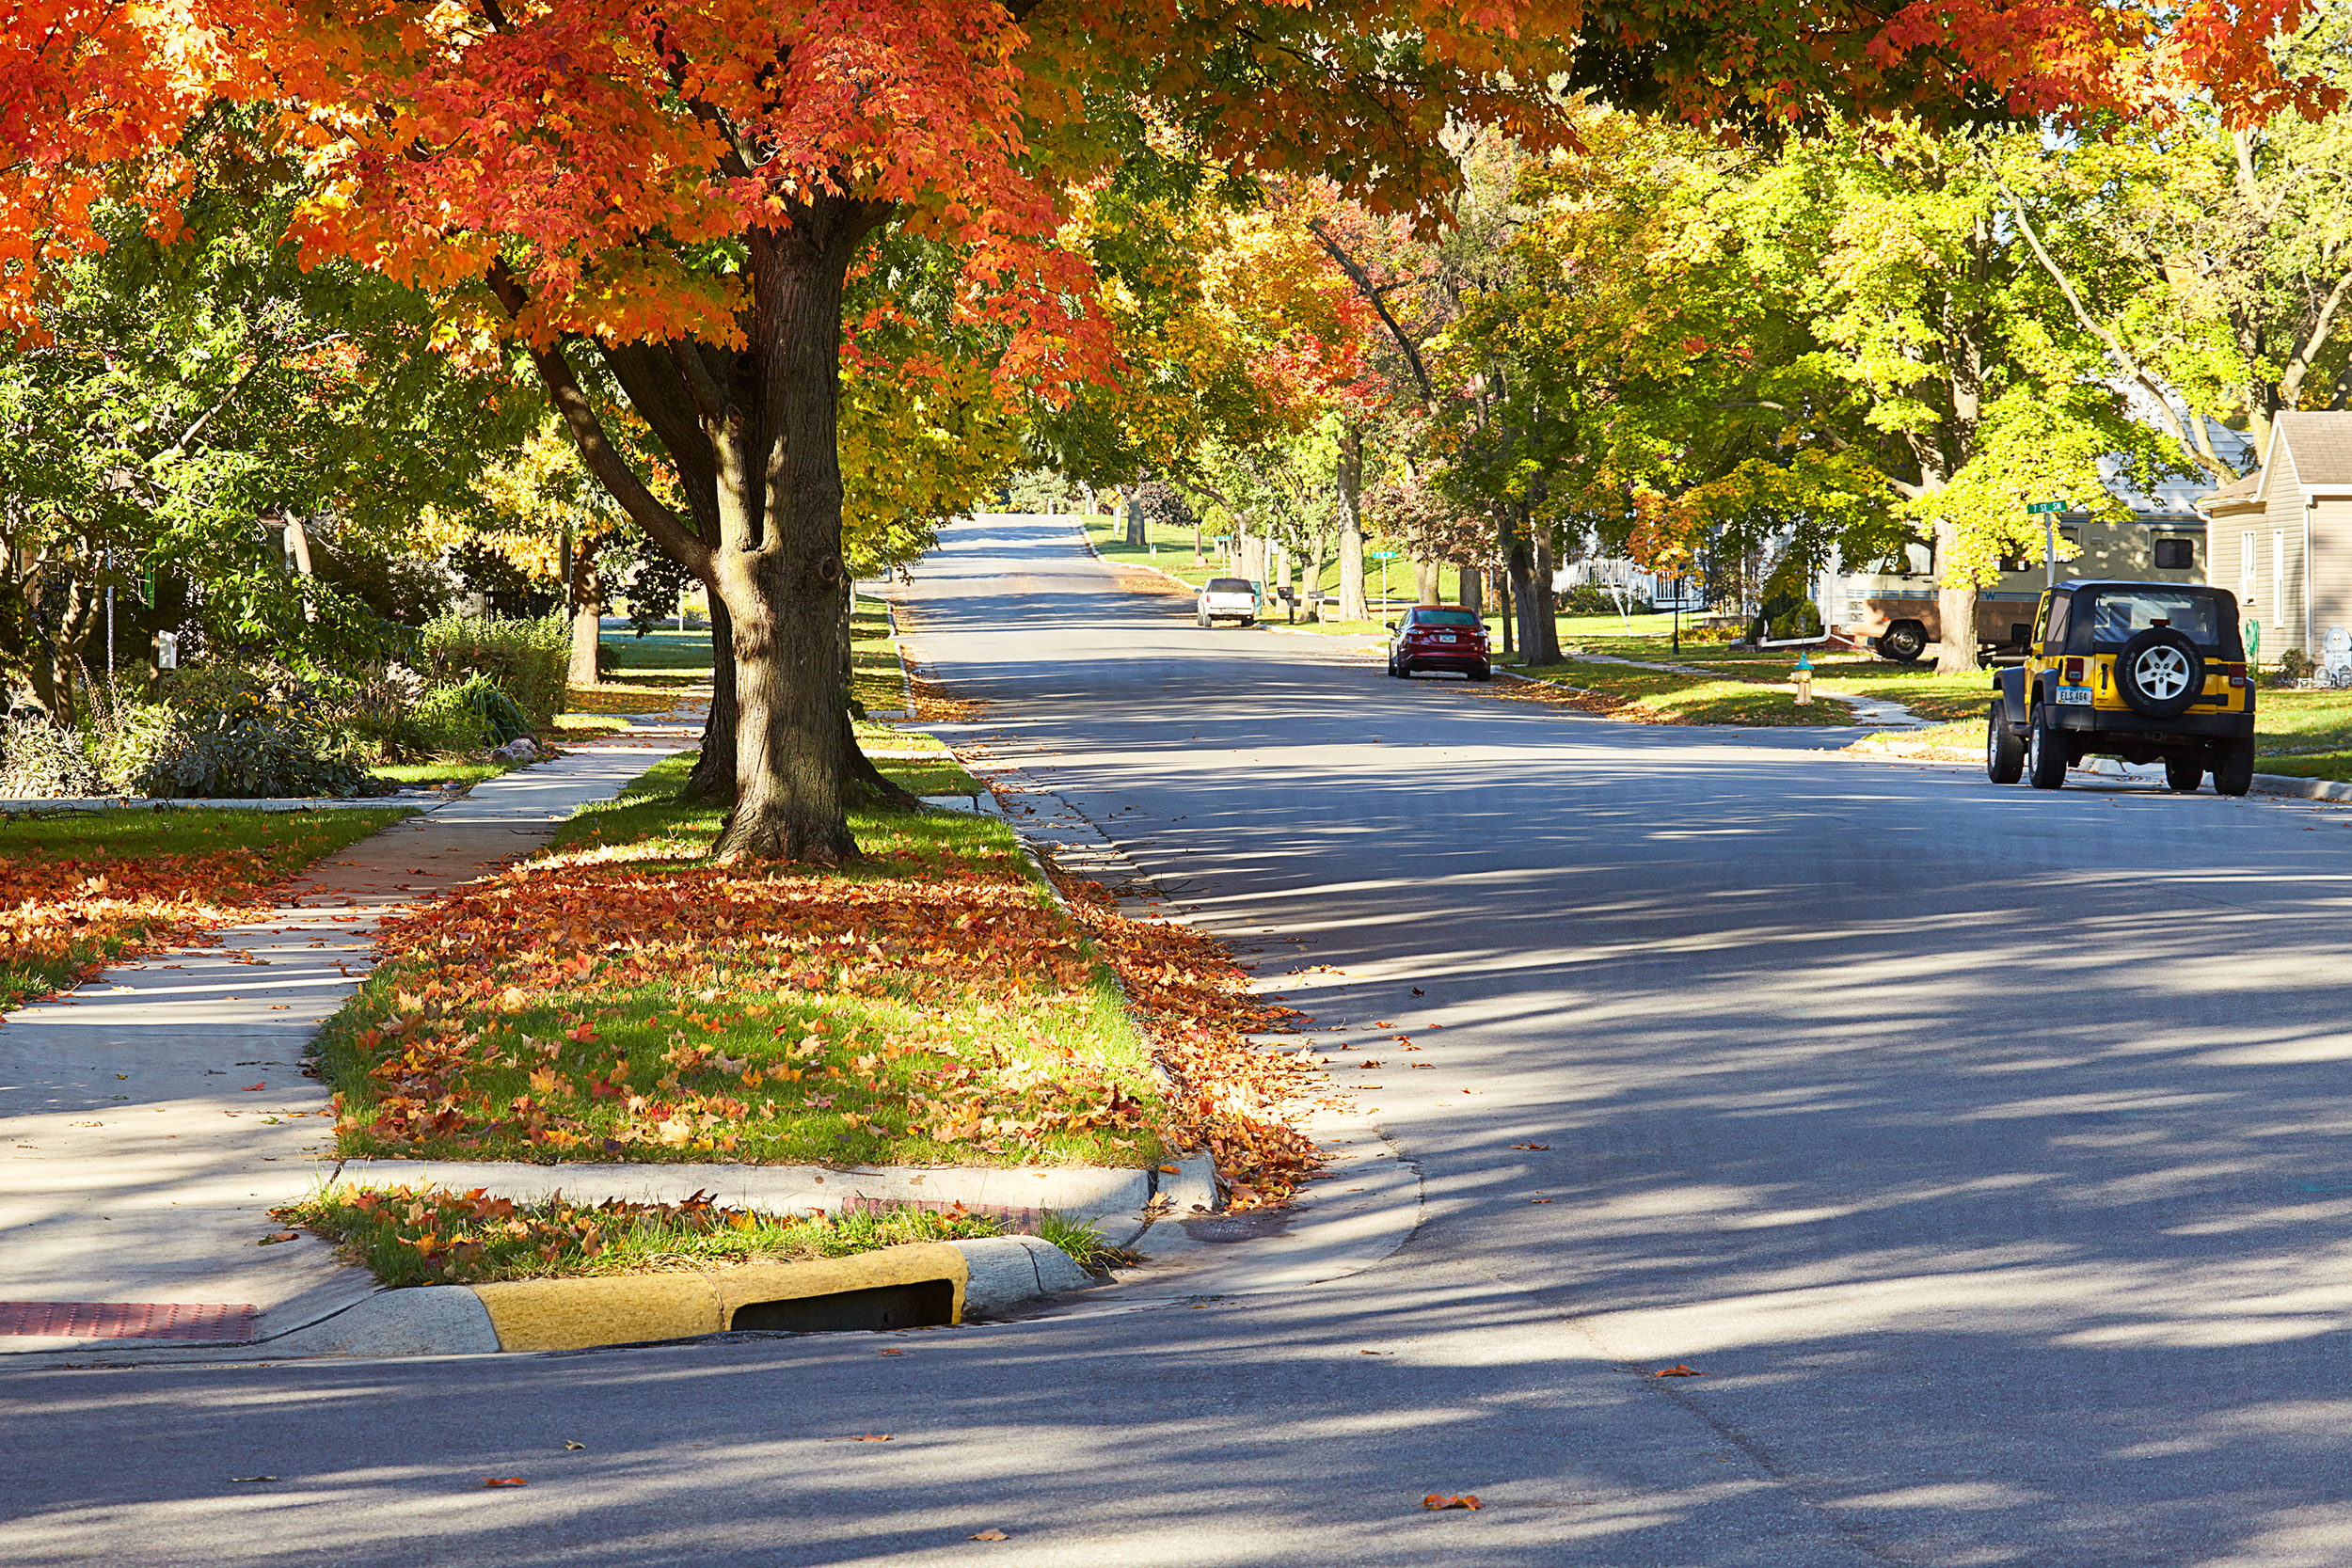 Street with fall leaves on the trees